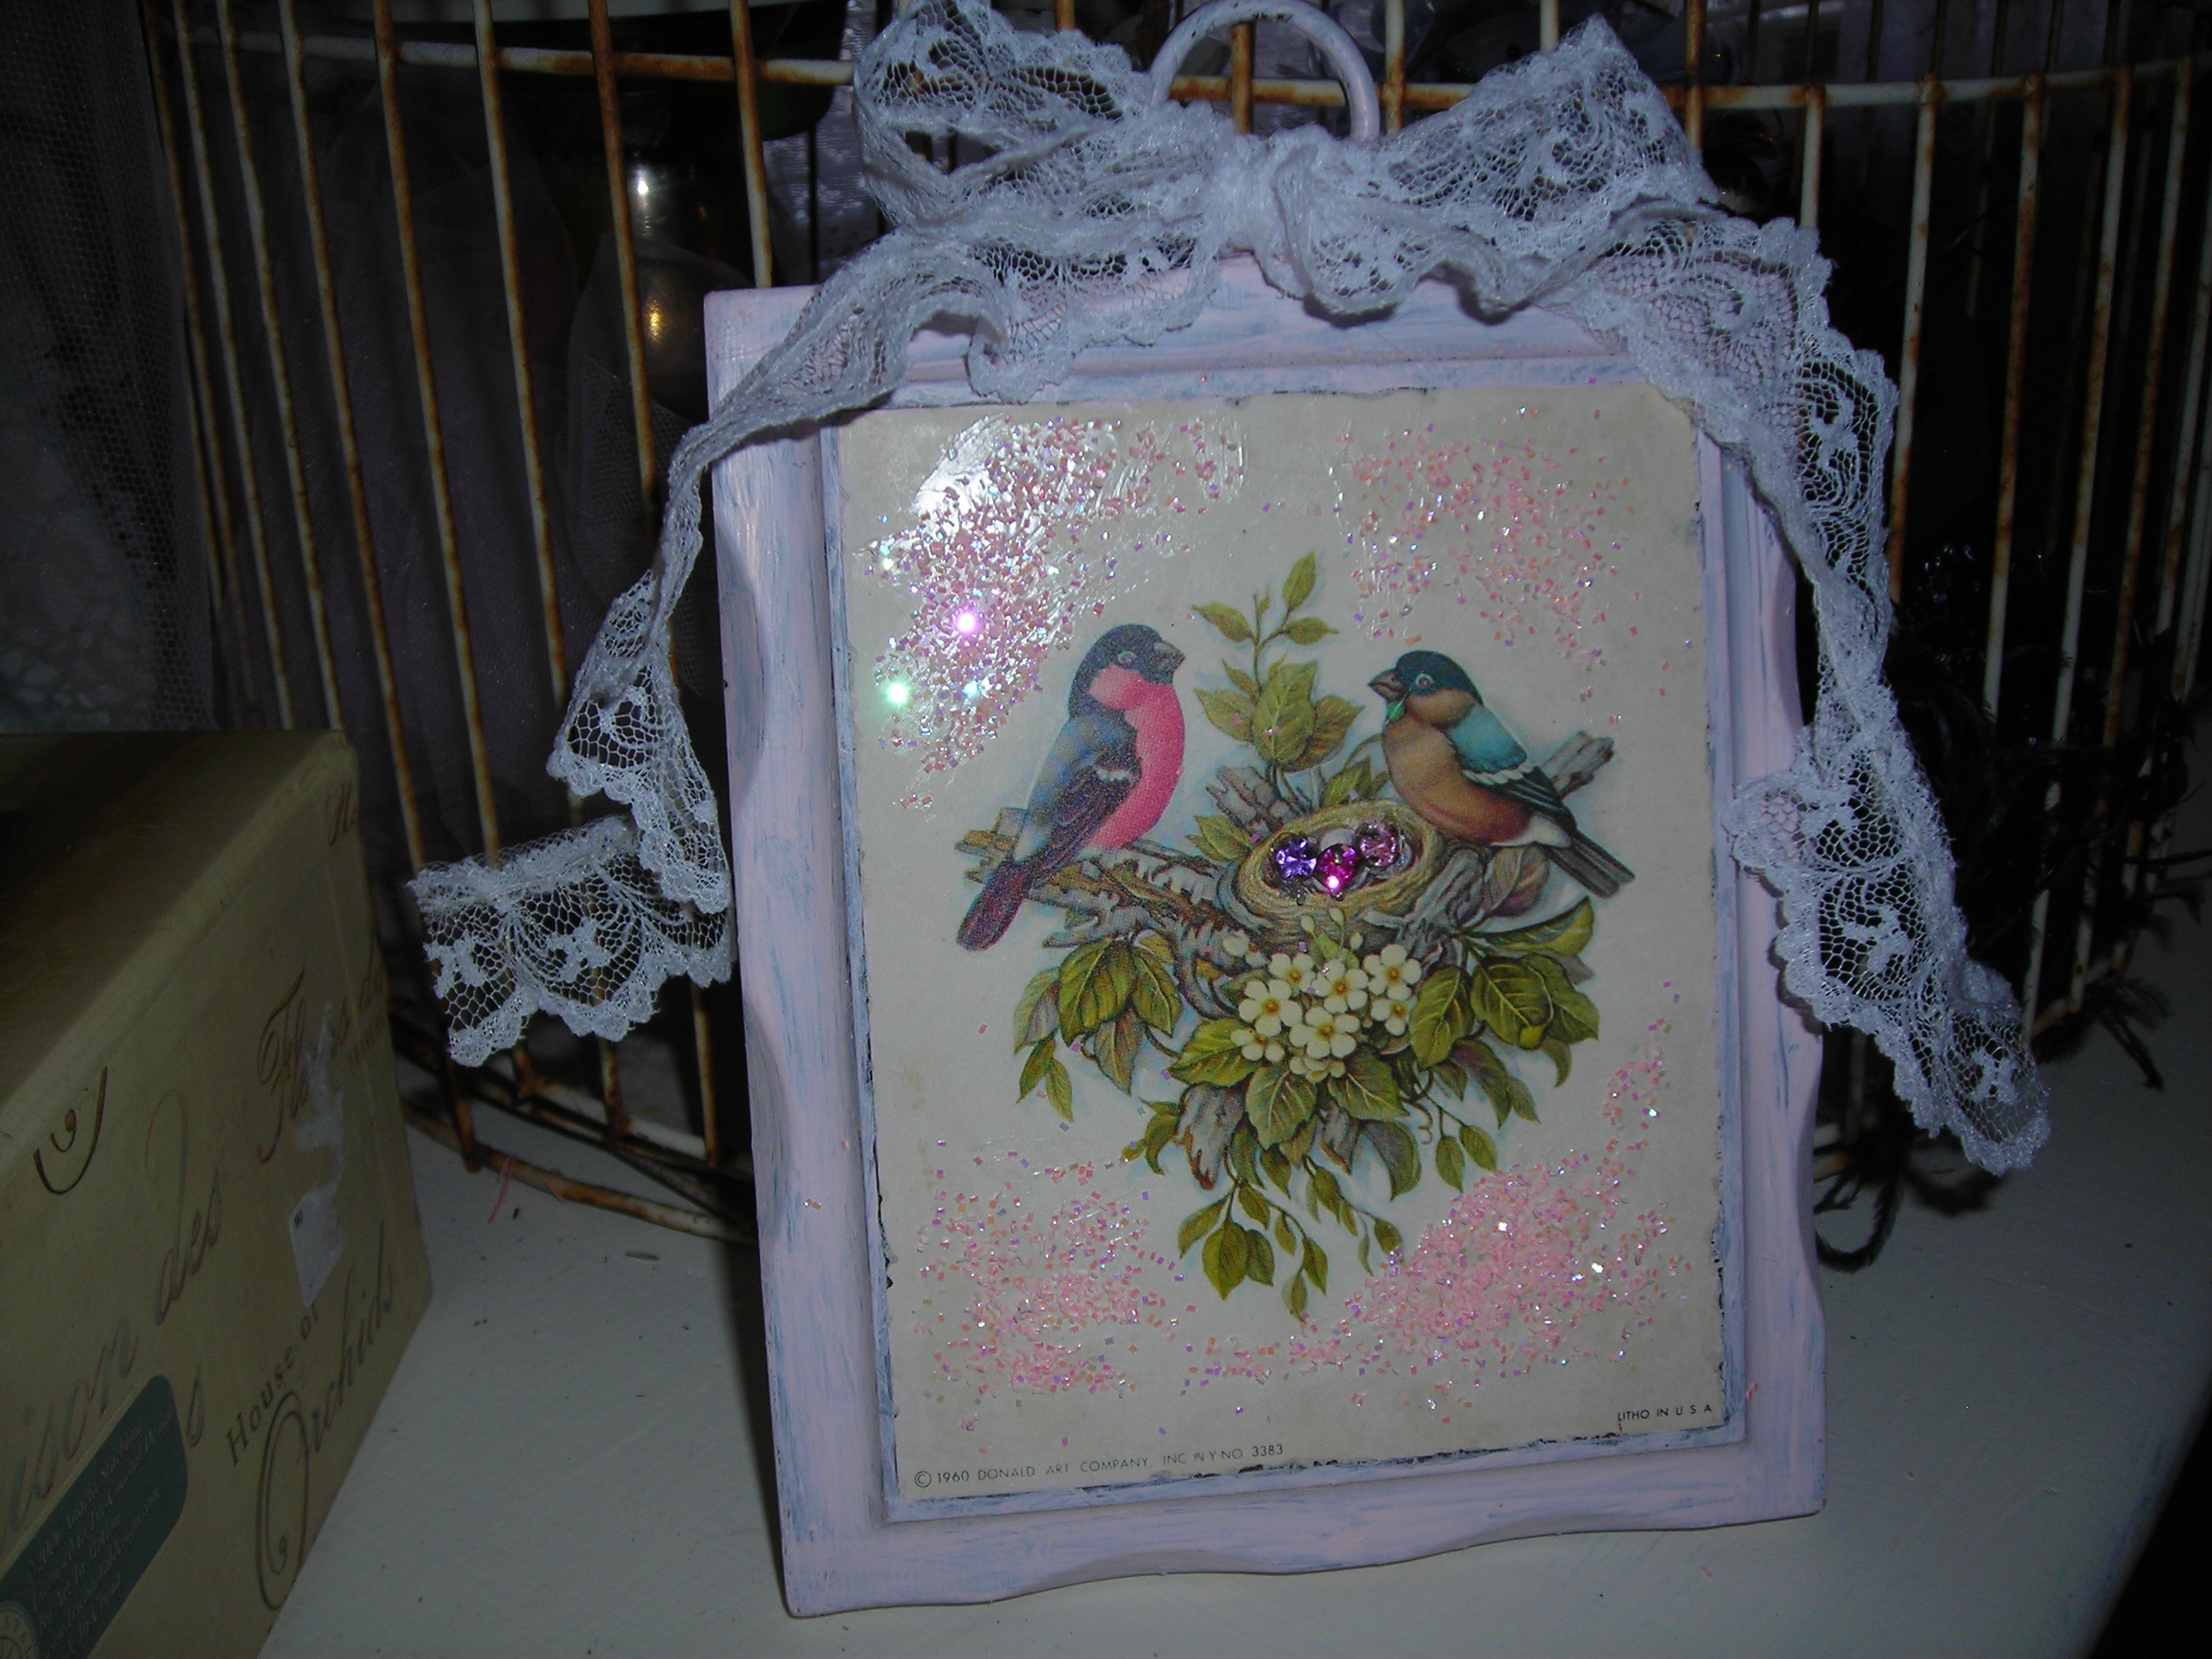 found this birdie picture at the GW barn. painted the dark wood, added pink glitter, bling in the nest and some lace. now she looks great in my bird collection